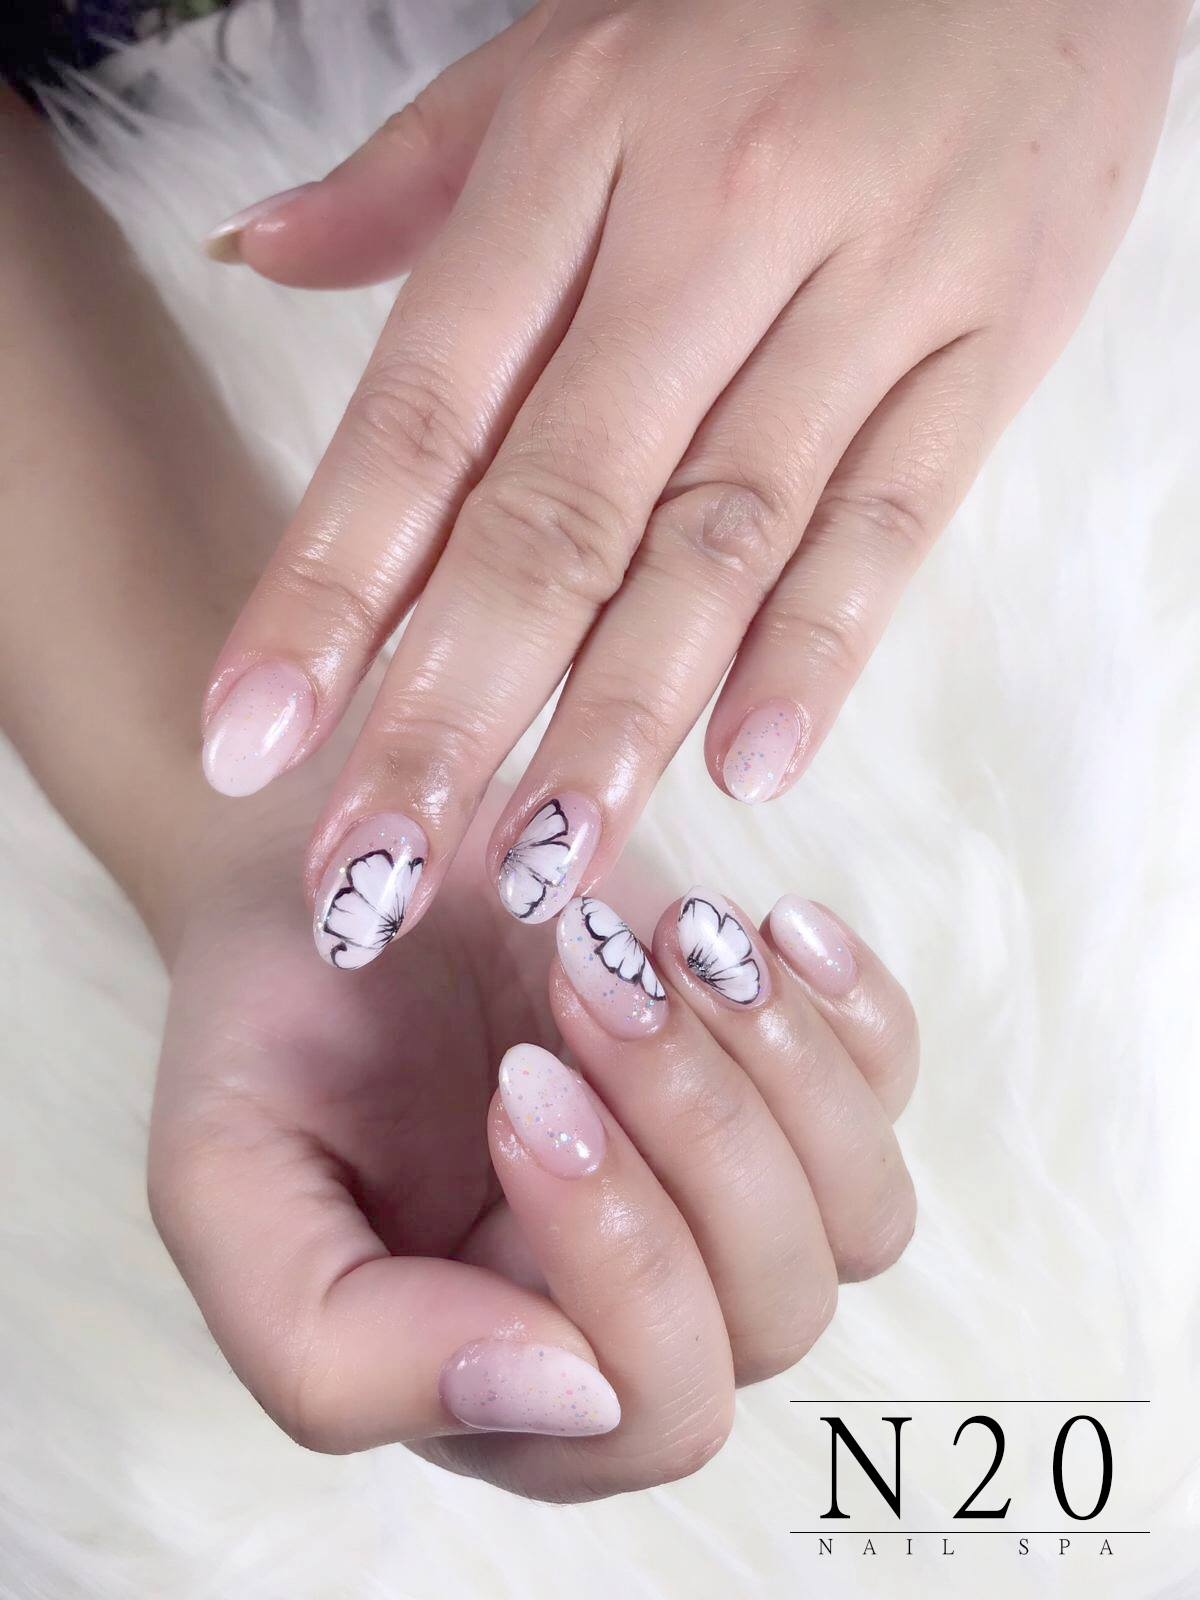 Natural clear polish with flora pattern and silver glitters manicure nail art